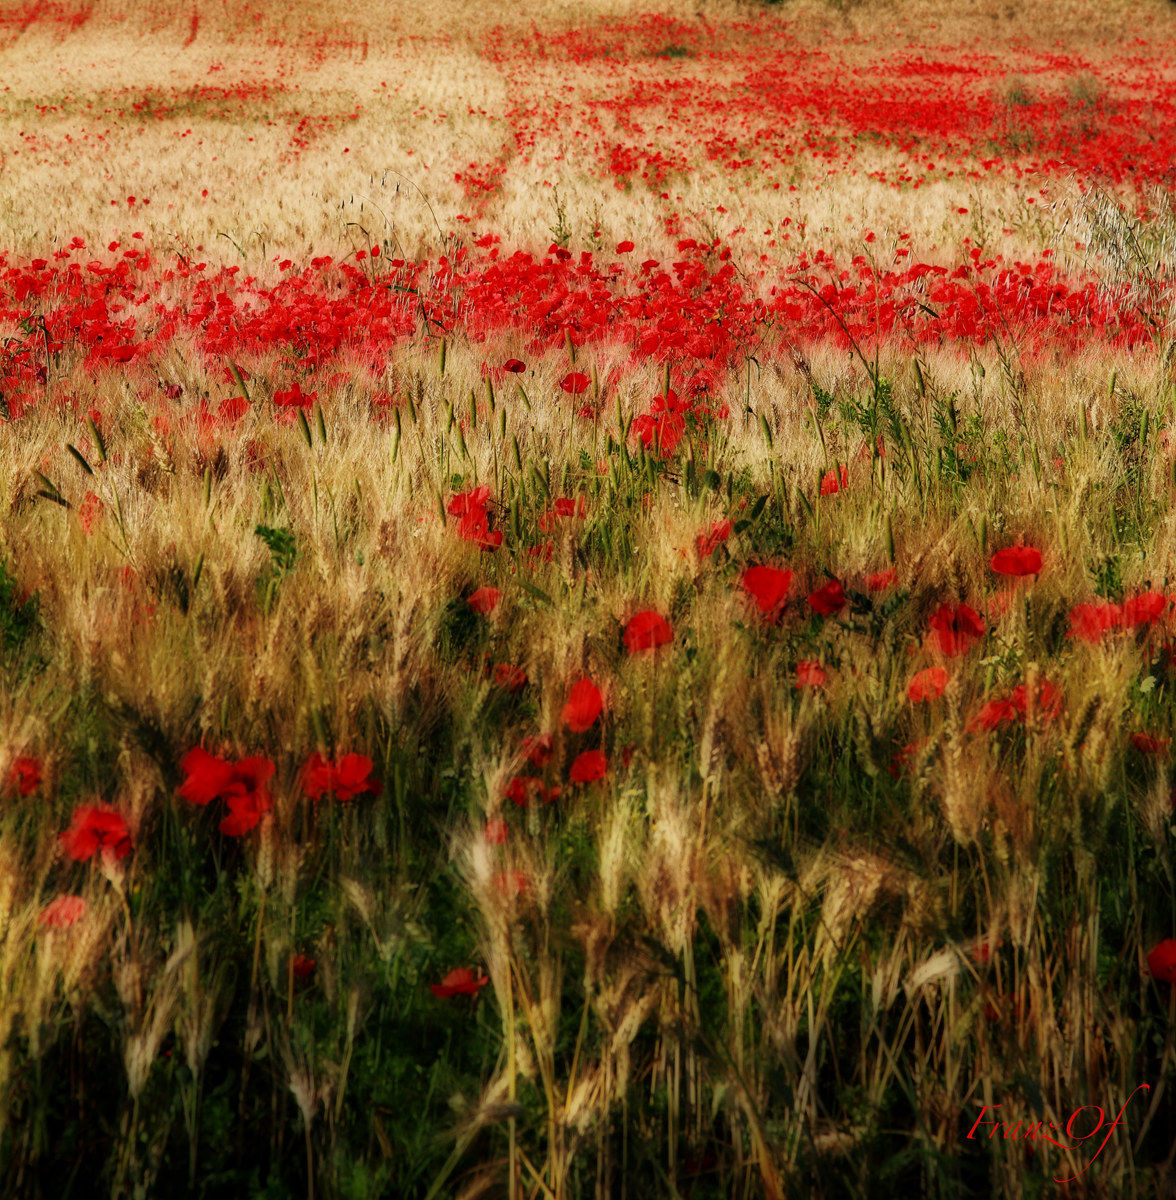 Poppies in the Grain...